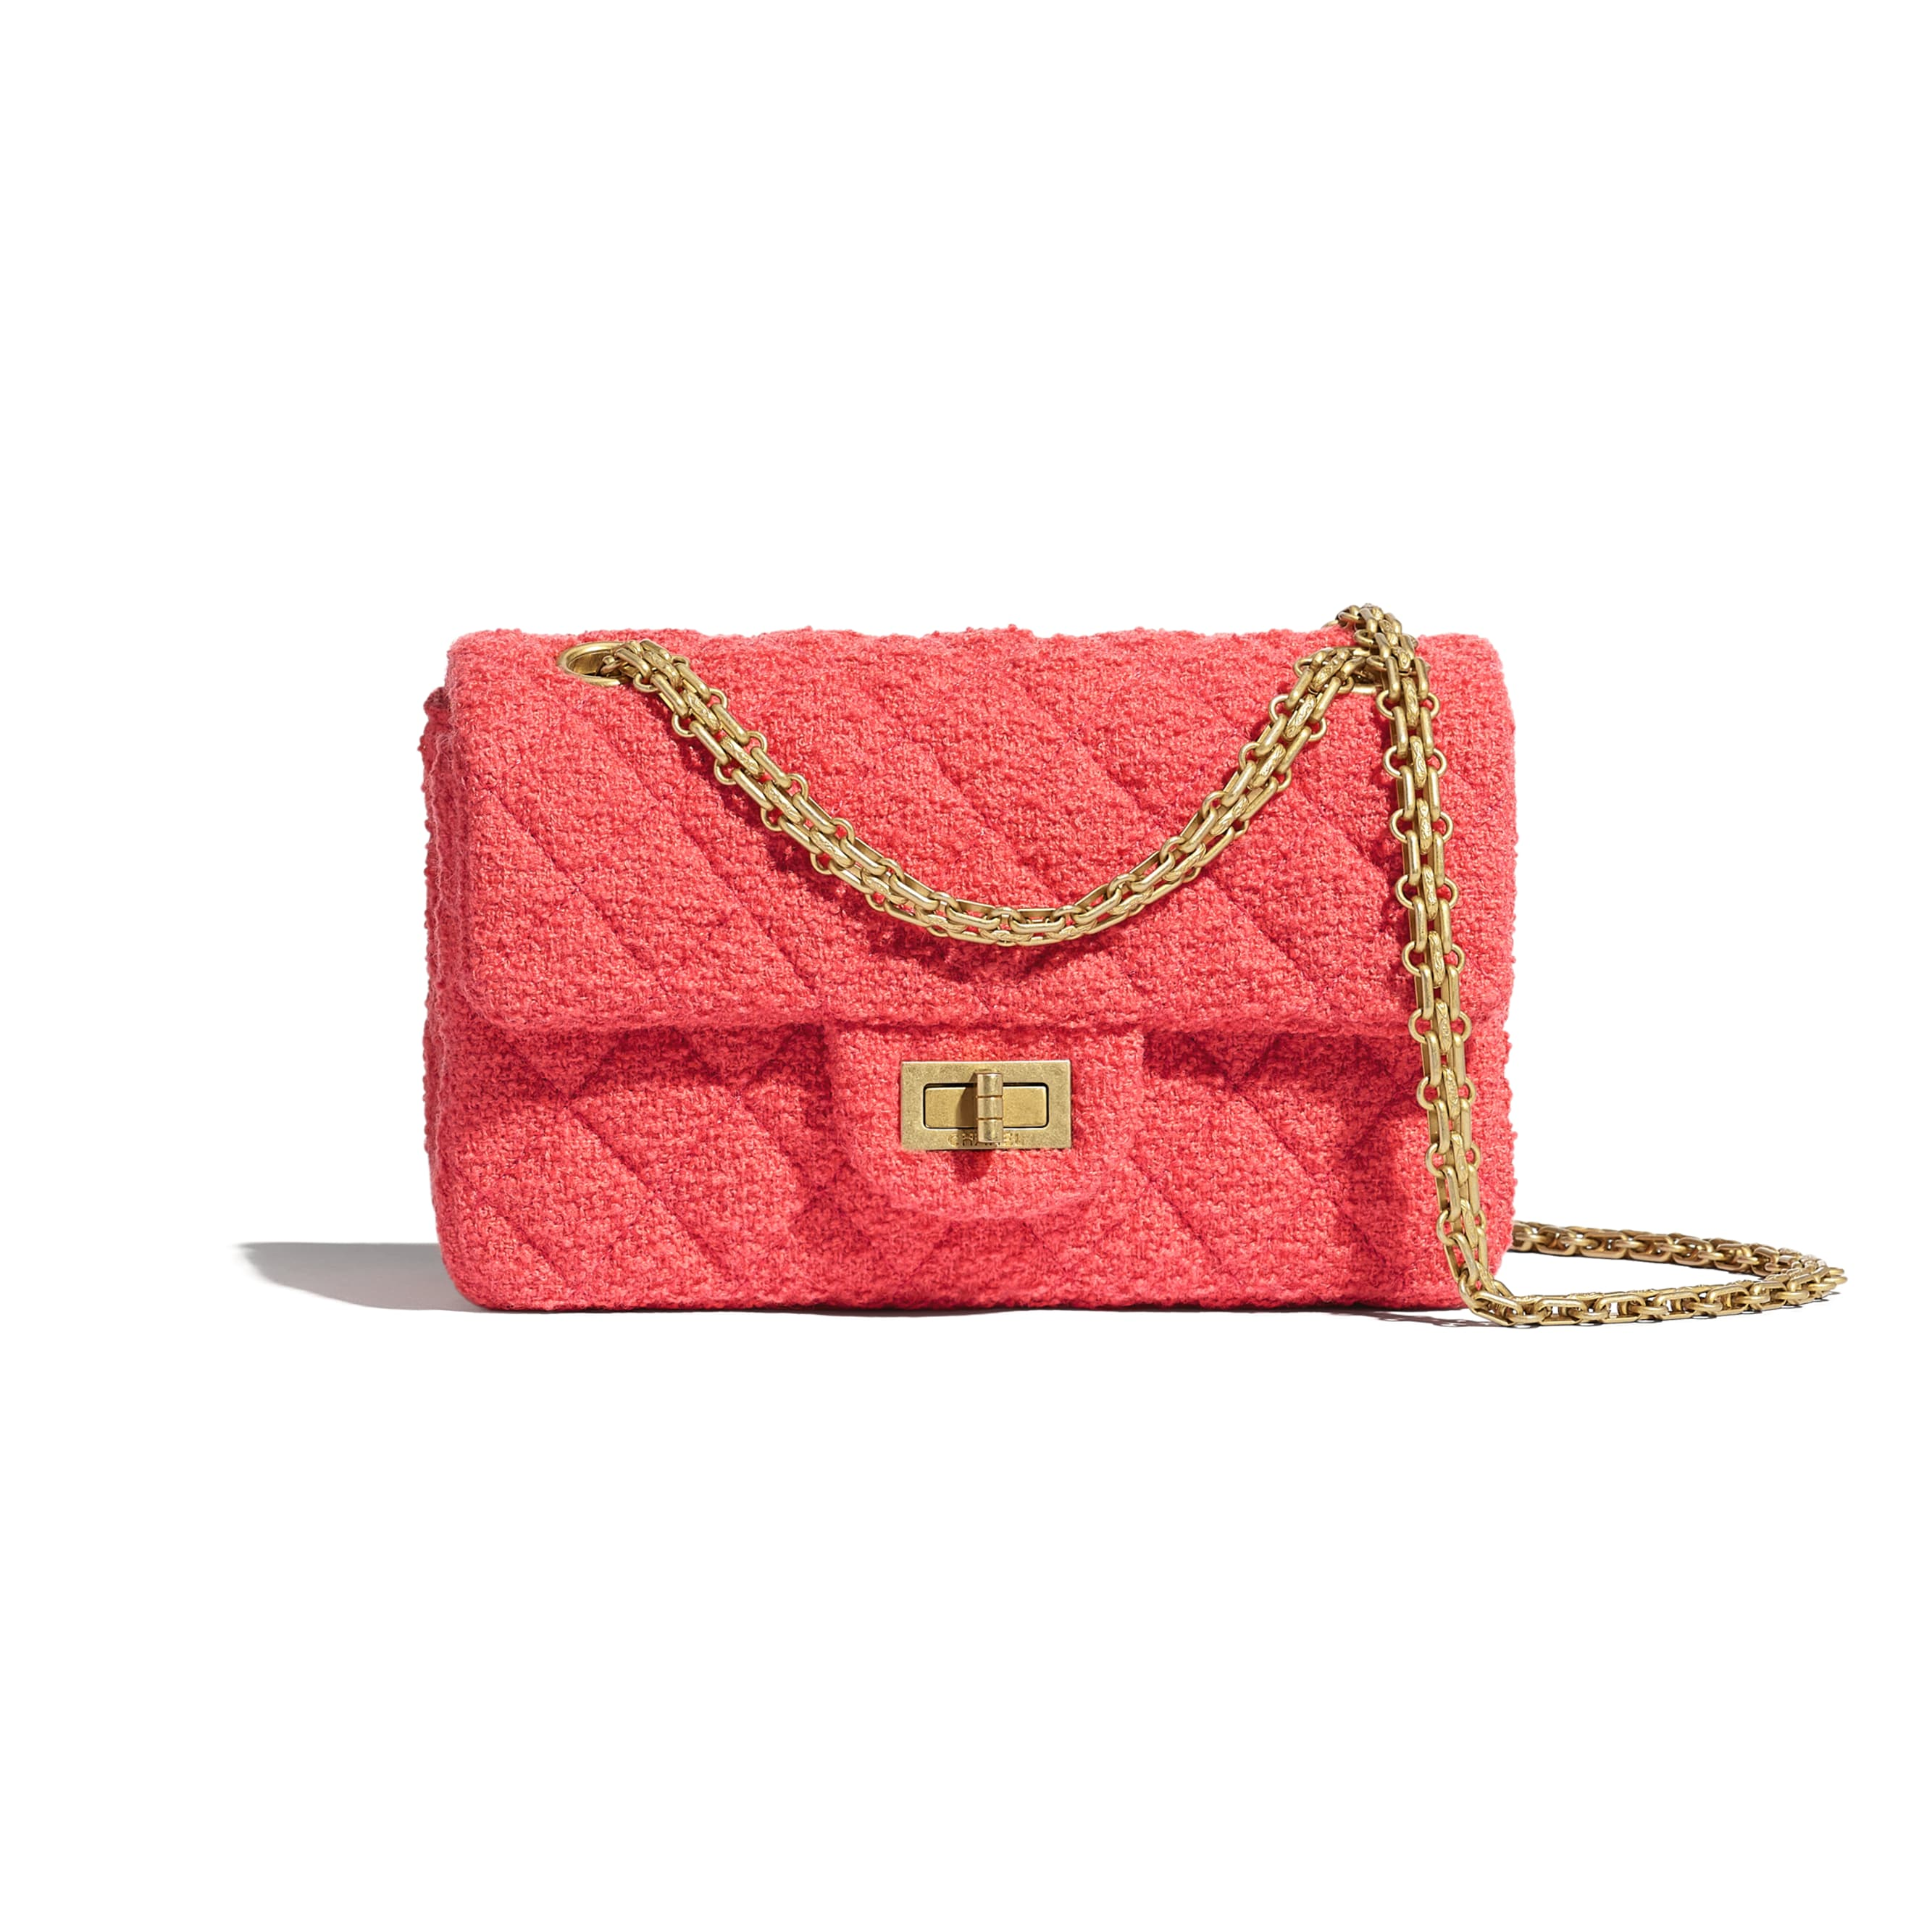 Mini 2.55 Handbag - Coral - Wool Tweed & Gold-Tone Metal - CHANEL - Default view - see standard sized version